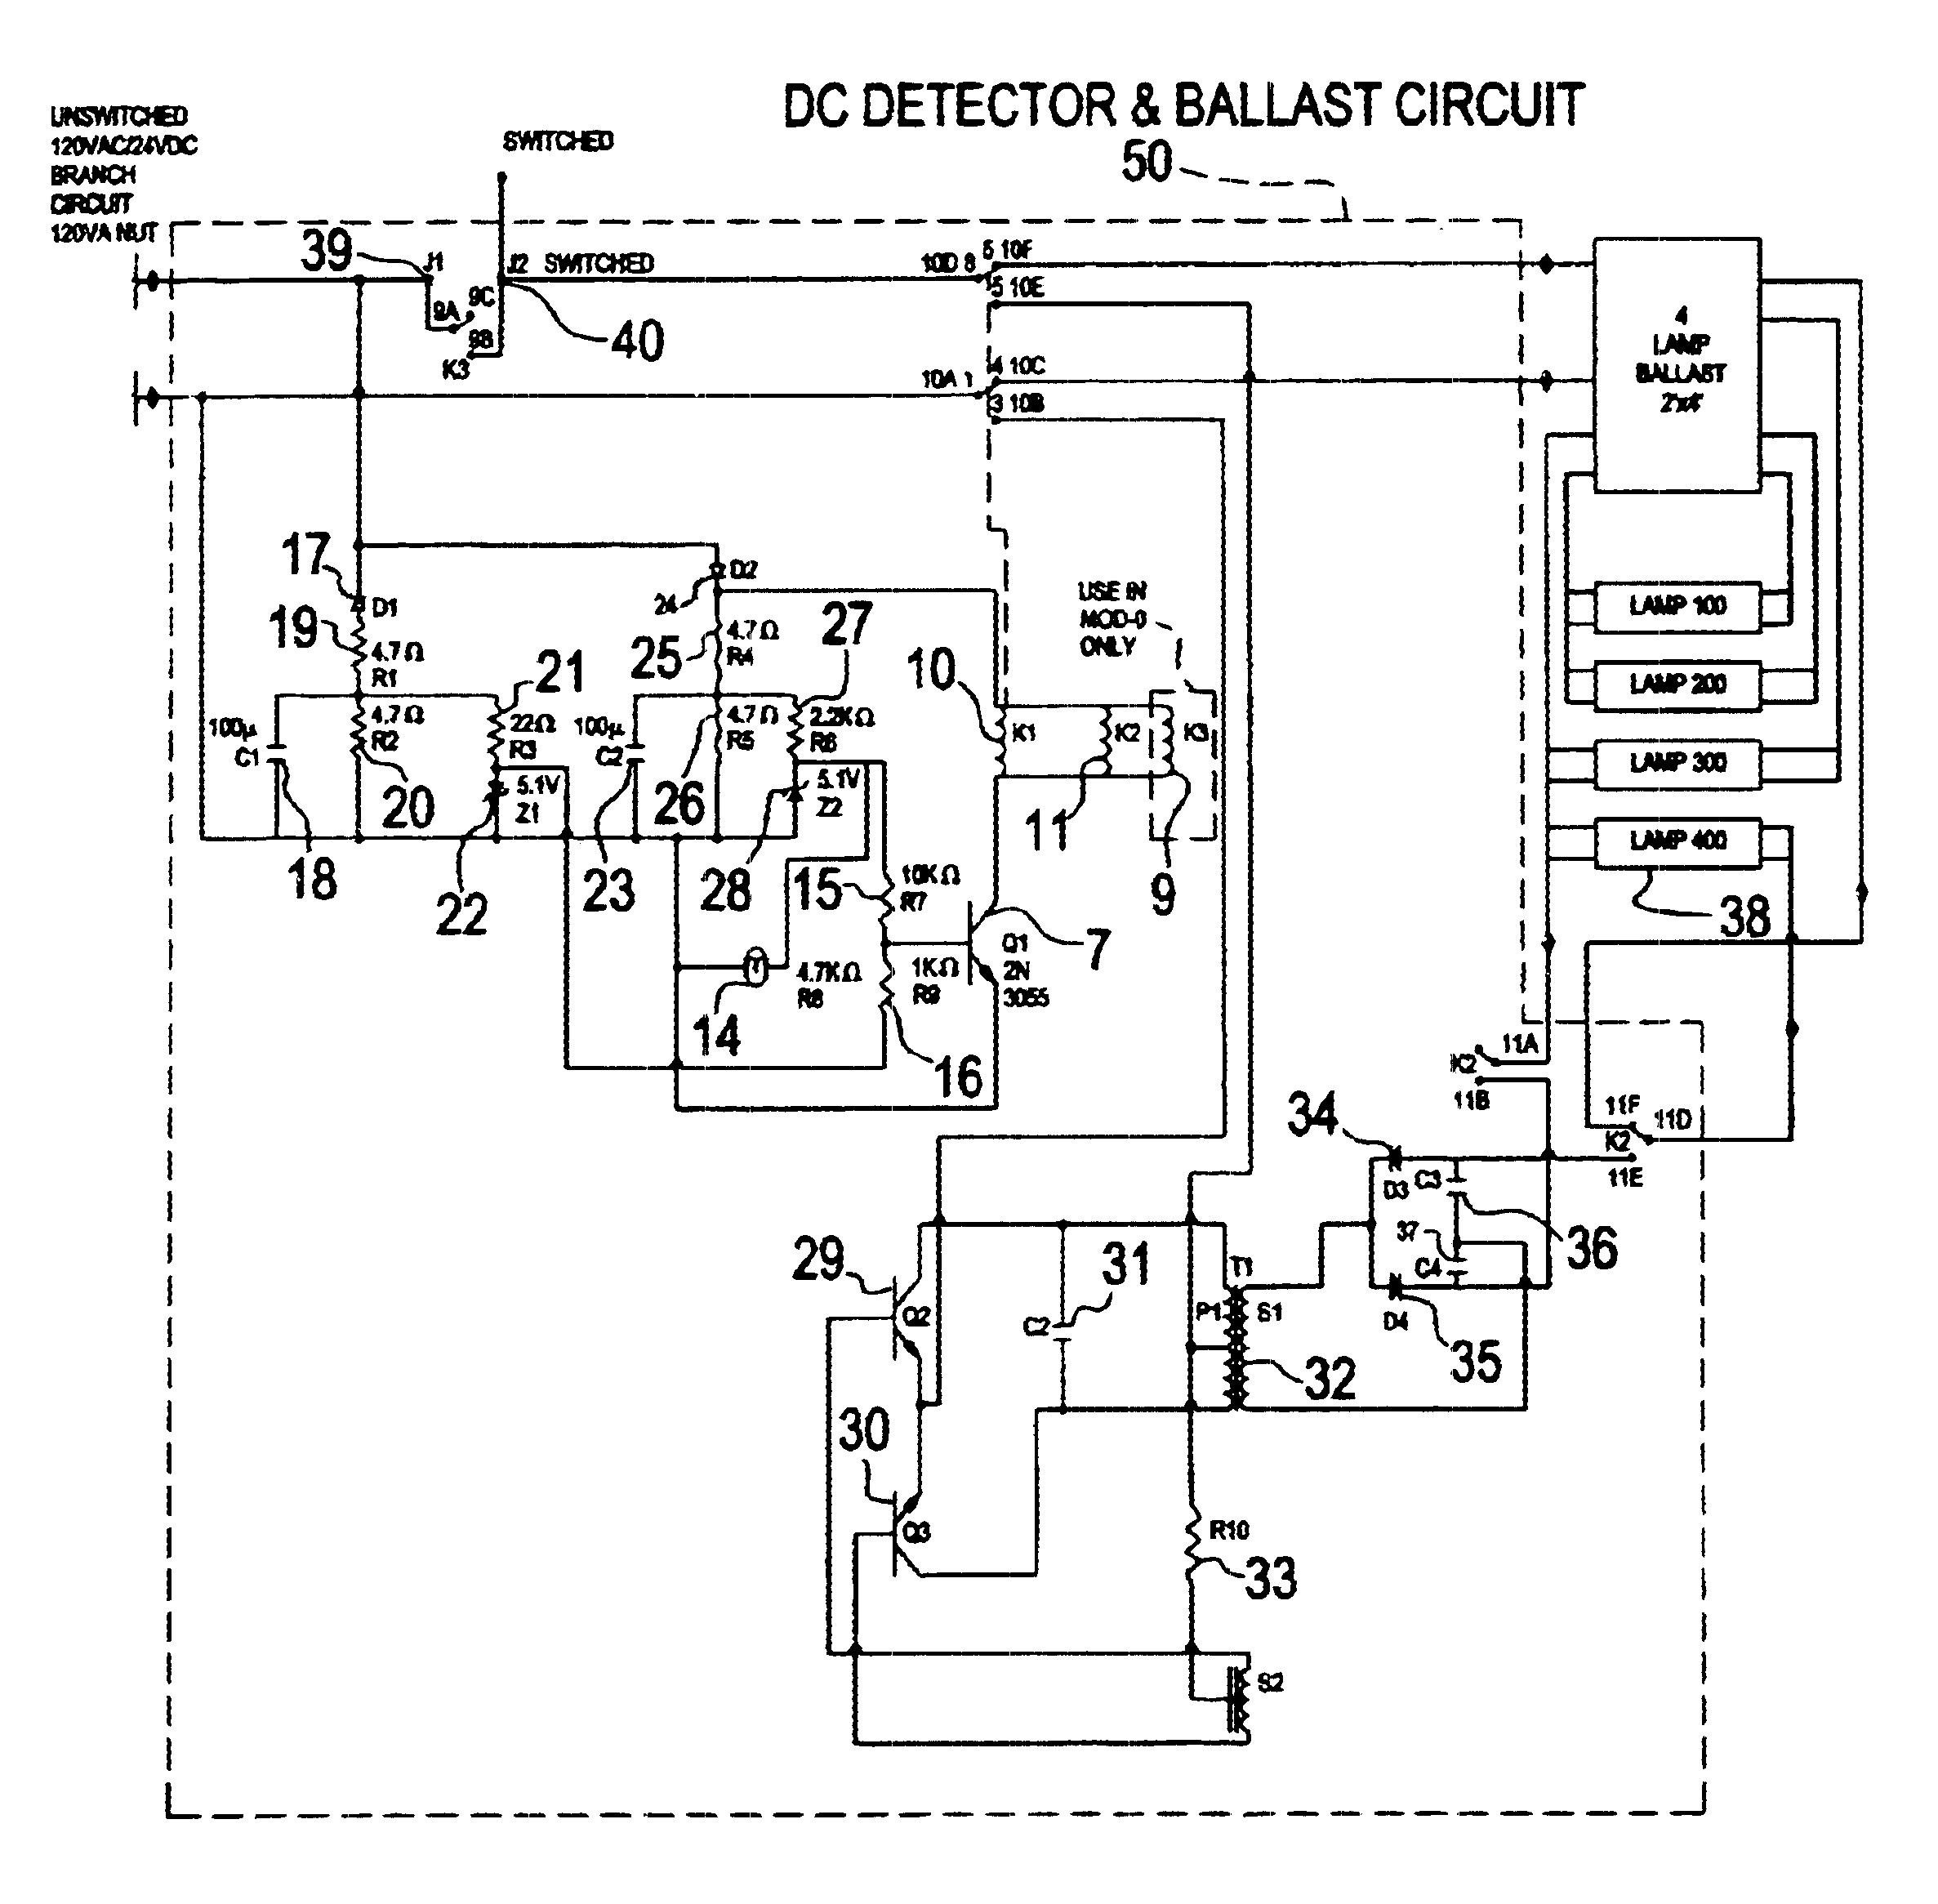 US06628083 20030930 D00000?resize\=665%2C653 emergency ballast wiring schematic gandul 45 77 79 119 bal1400 emergency ballast wiring schematic at panicattacktreatment.co